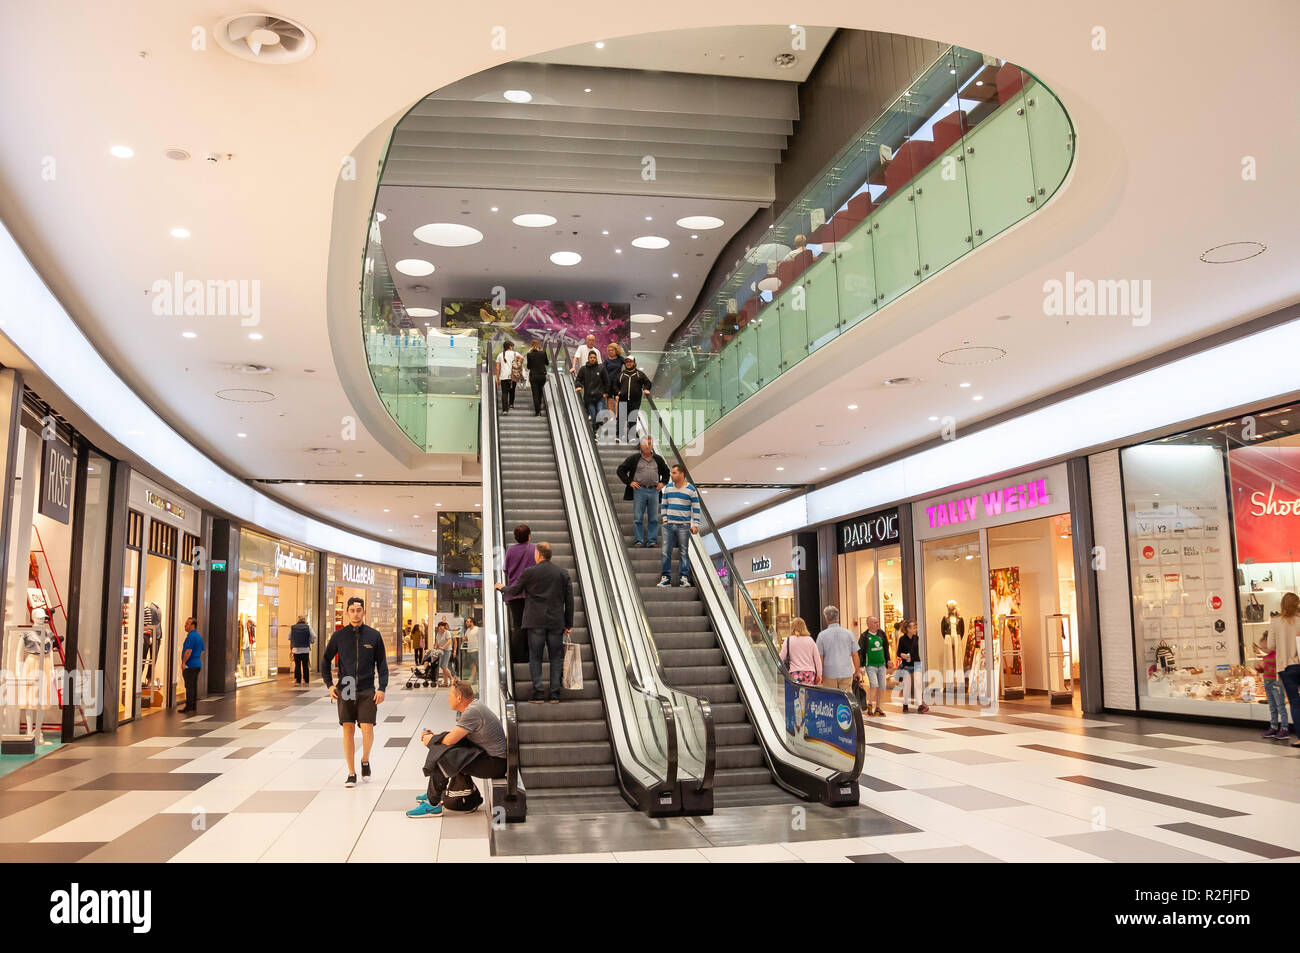 Escalators in Kings Avenue Mall, Tombs of the Kings Avenue, Paphos (Pafos), Pafos District, Republic of Cyprus Stock Photo